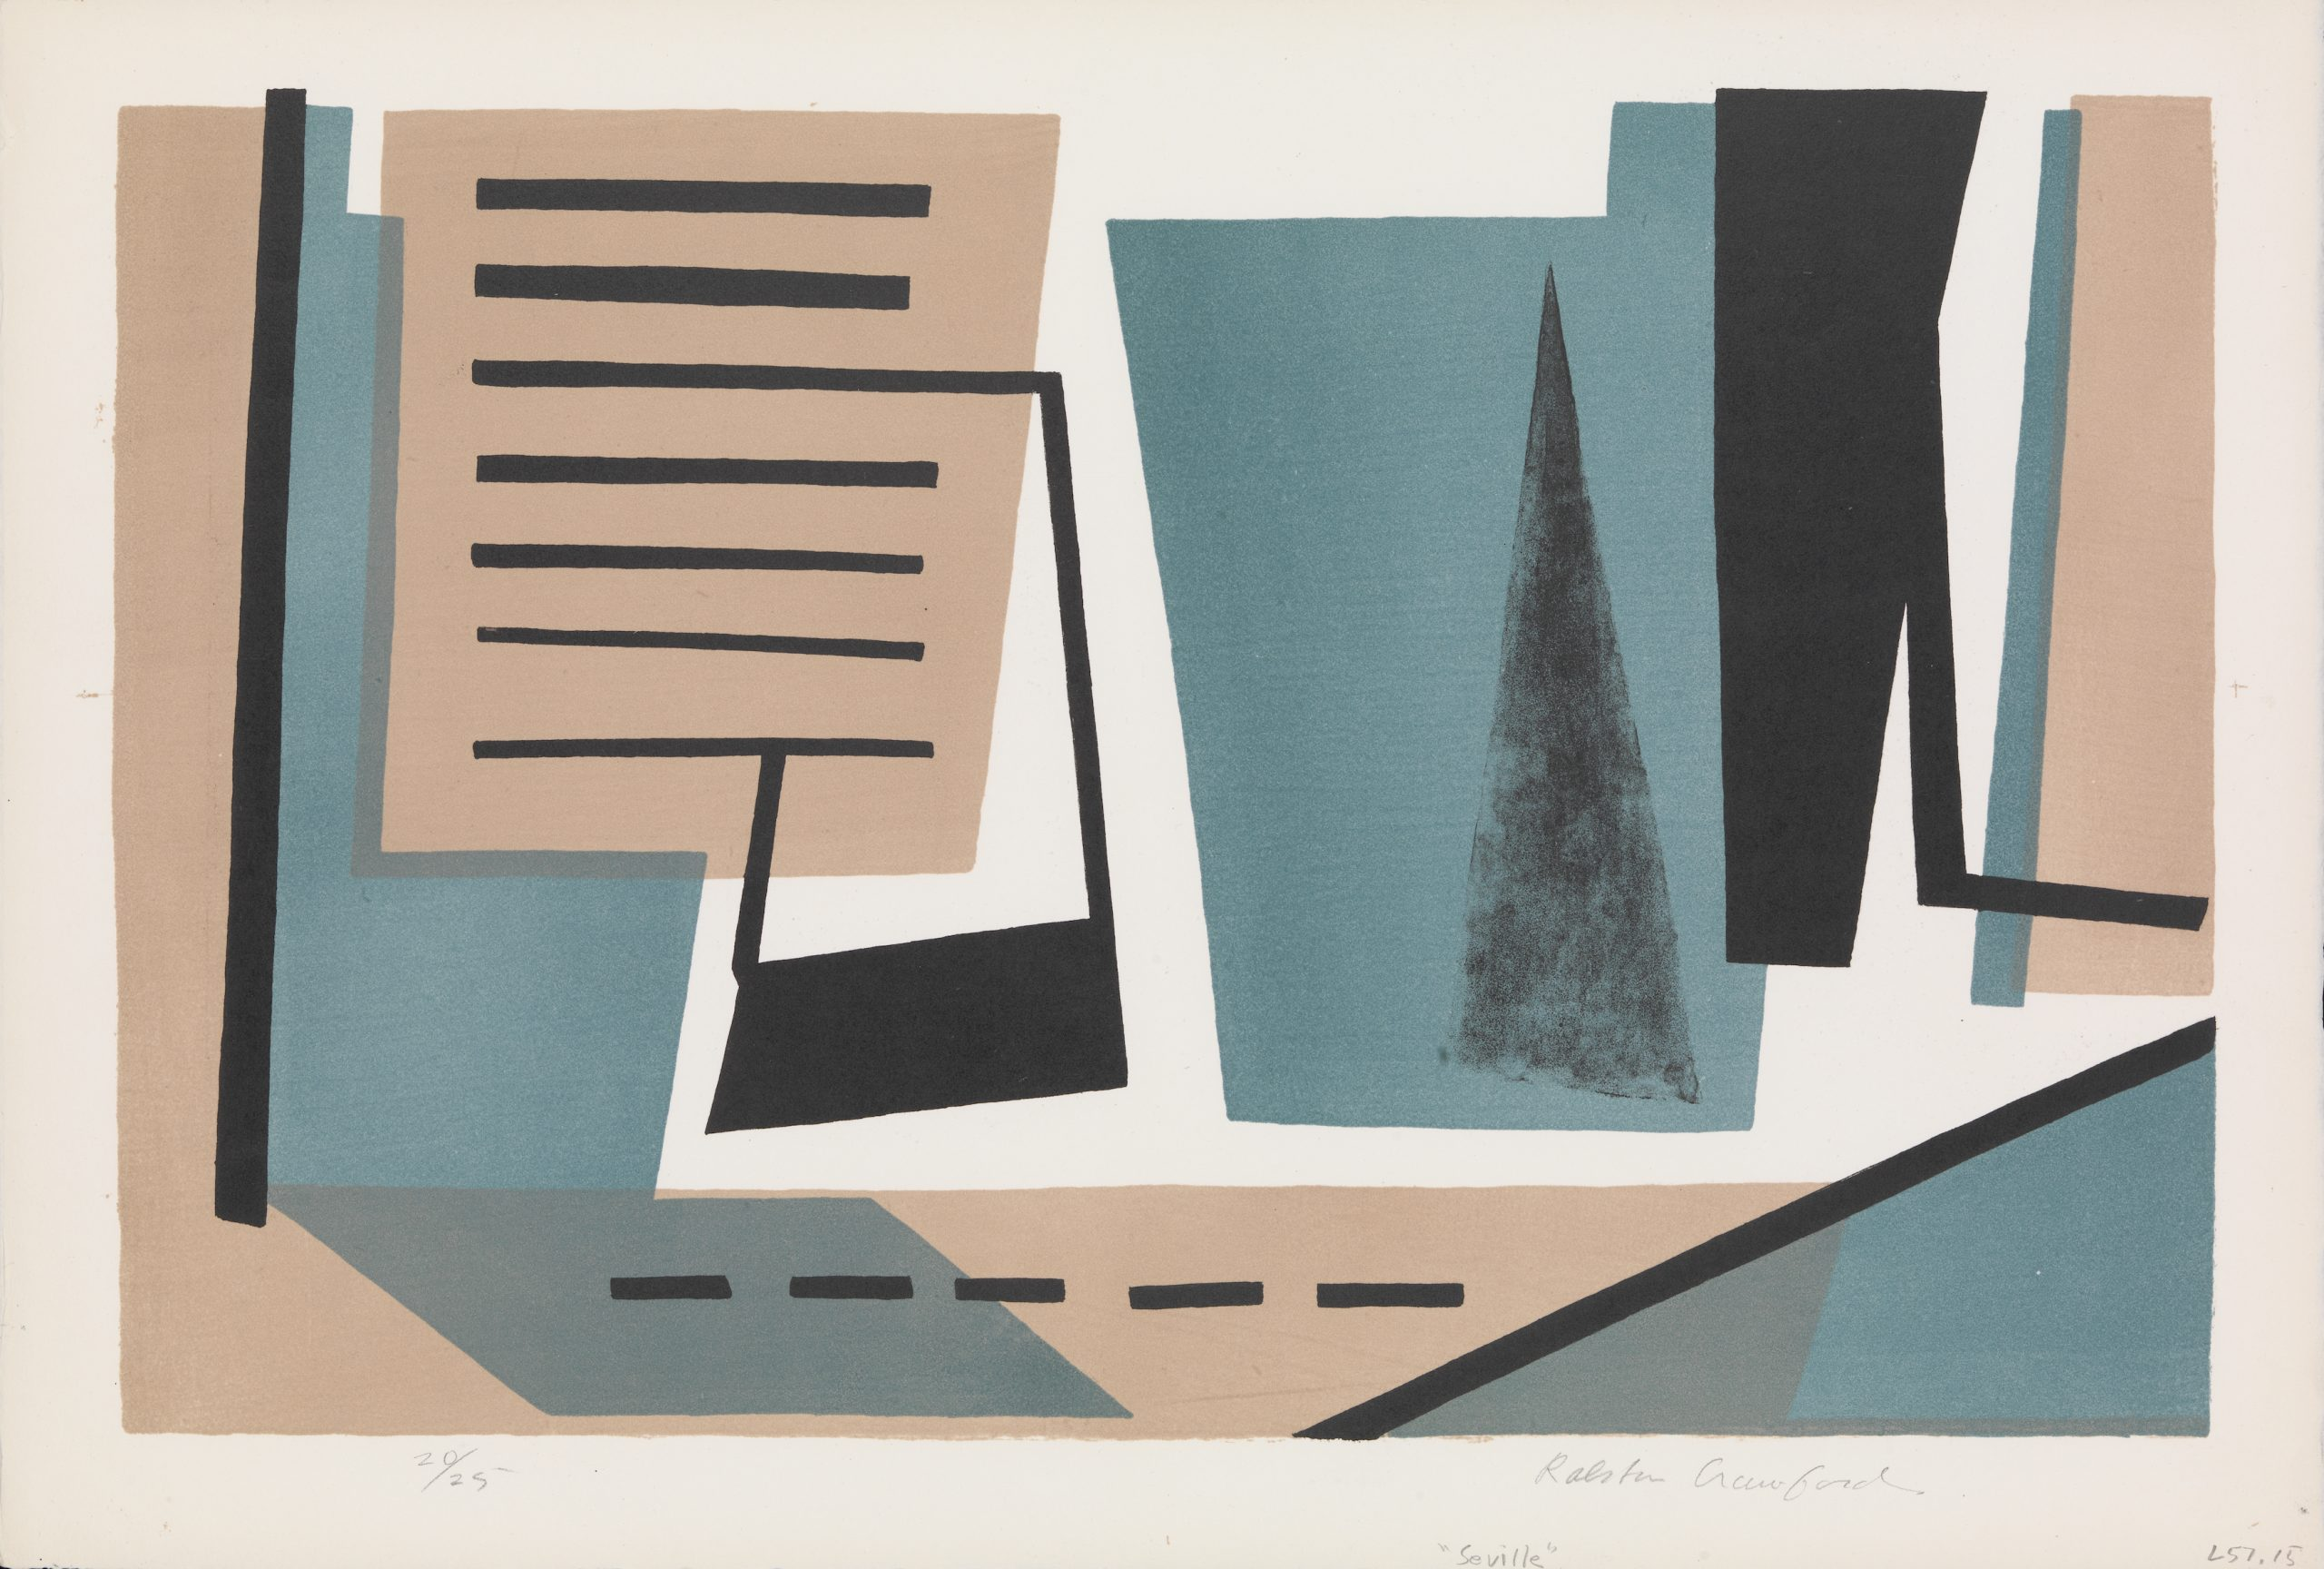 A lithograph composed of abstract geometric shapes suggesting text and figures.